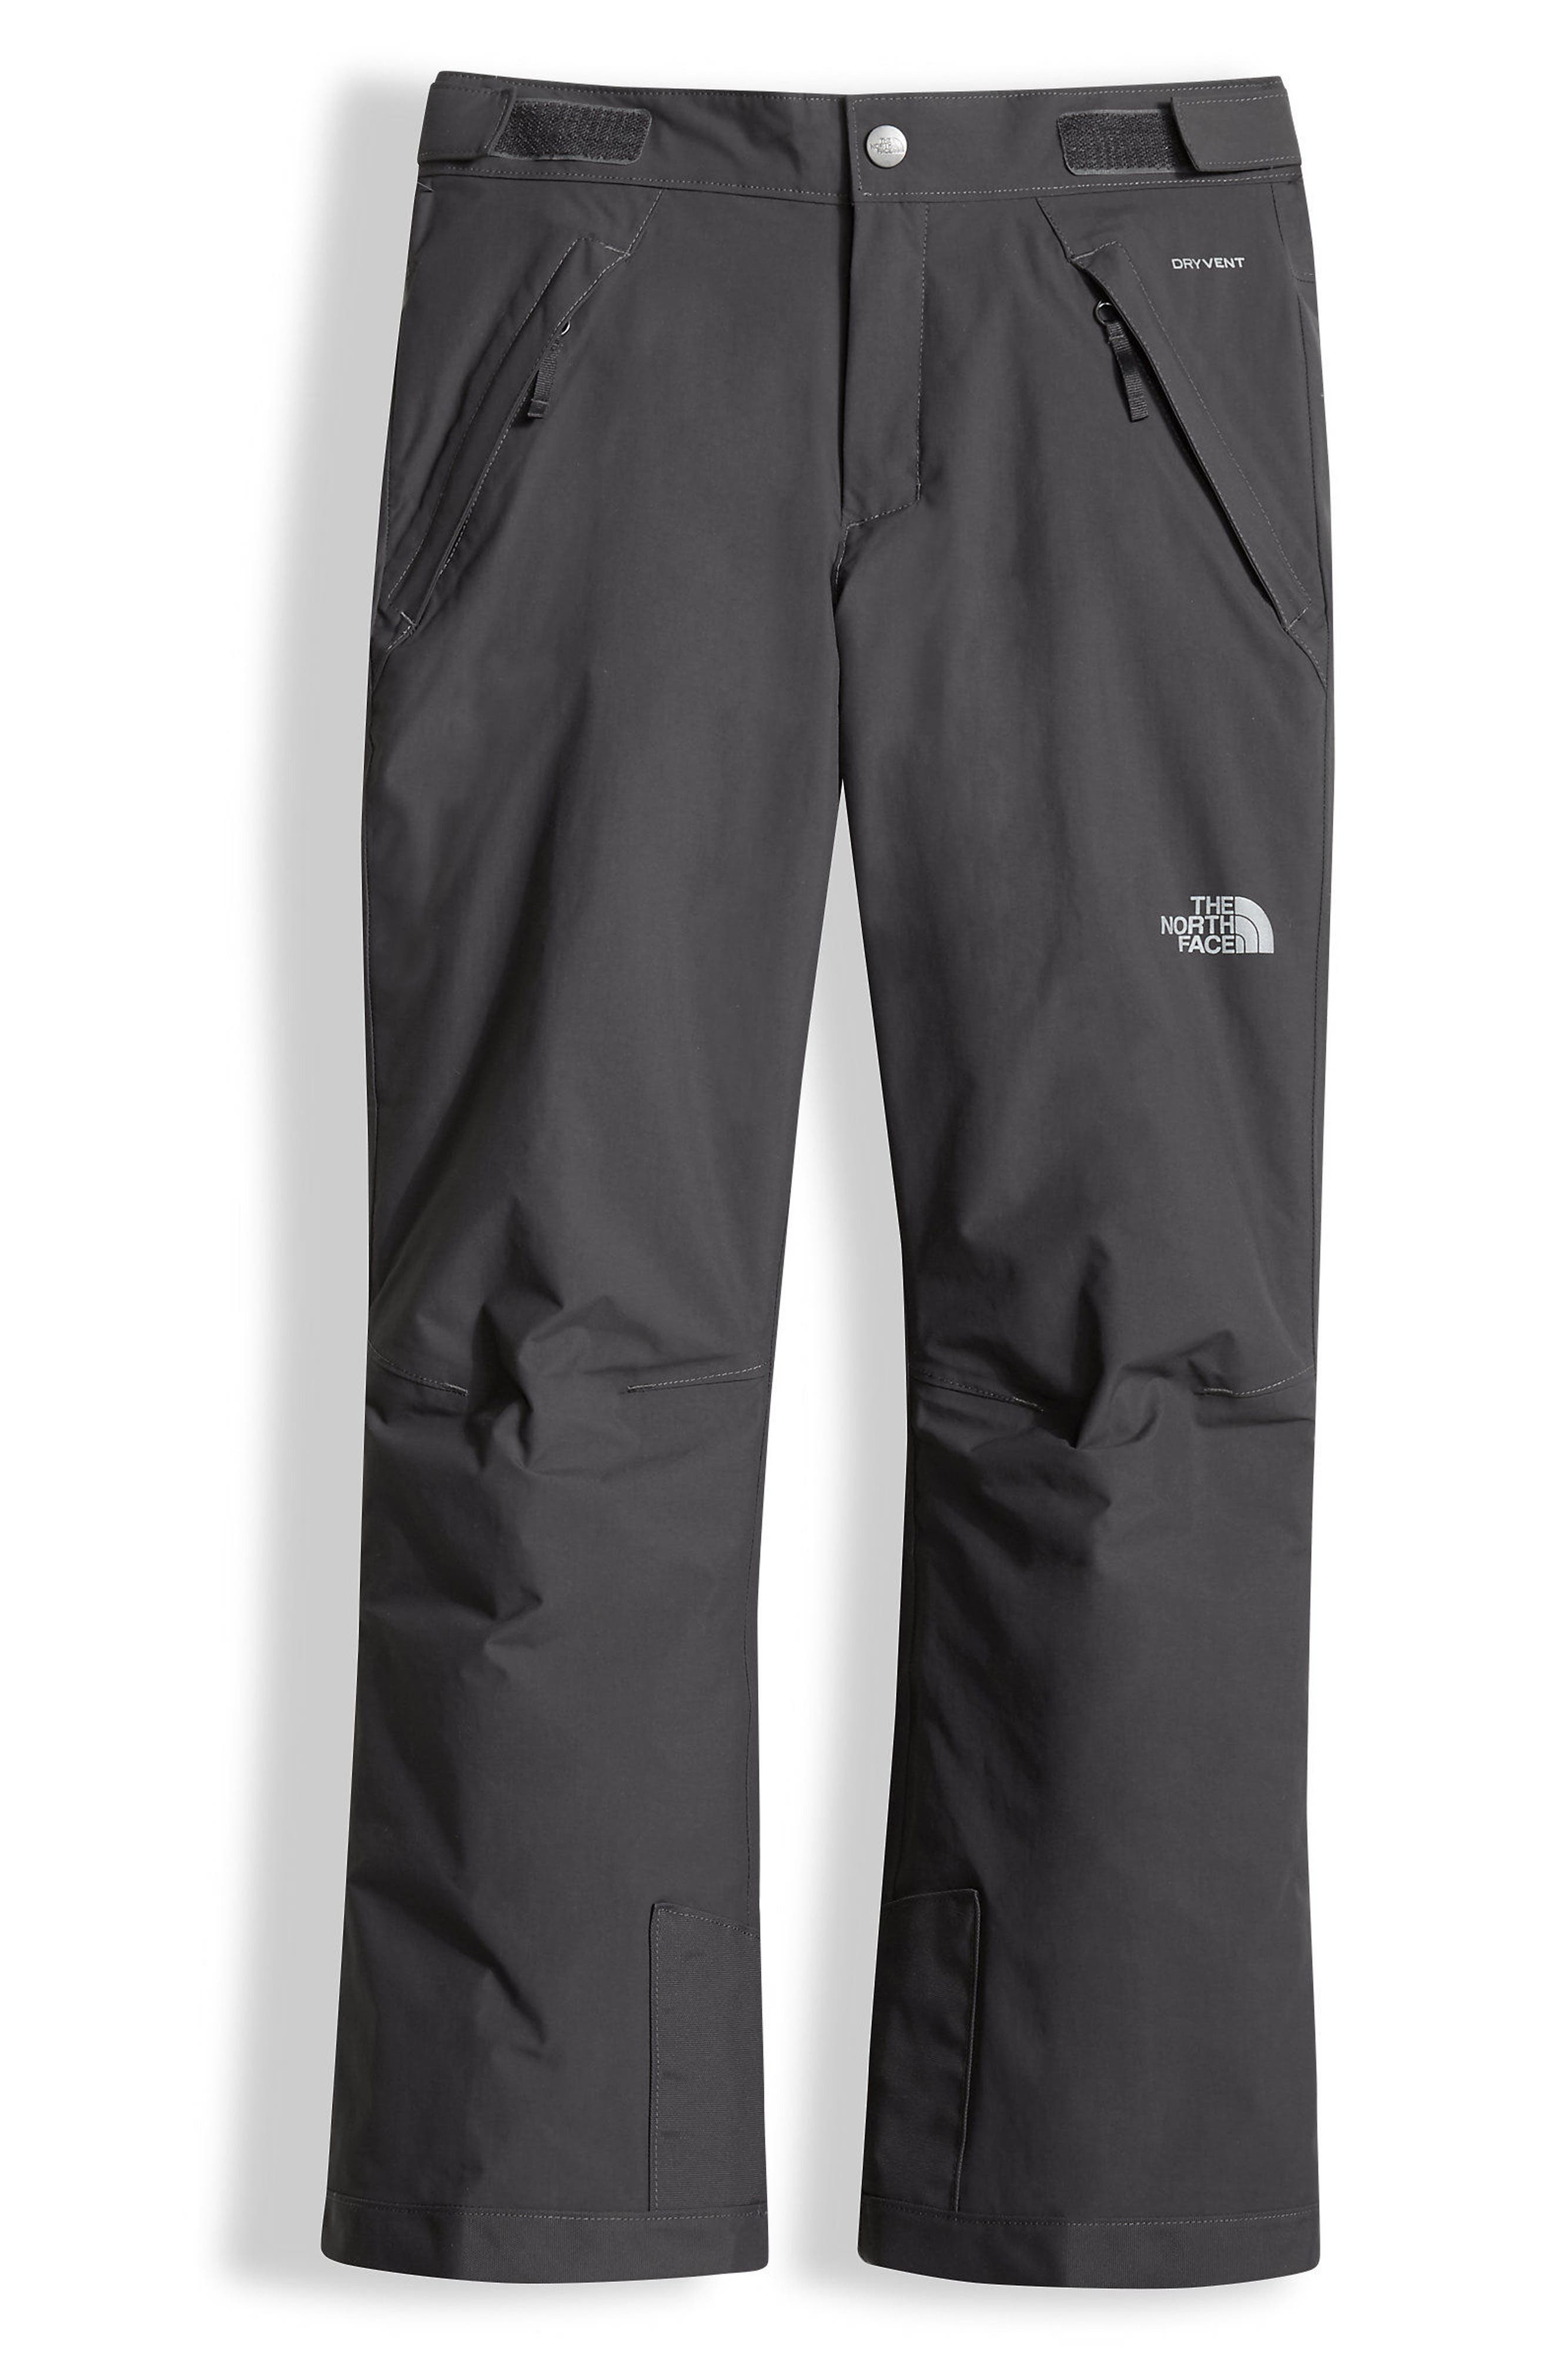 Alternate Image 1 Selected - The North Face Freedom Waterproof Heatseeker™ Insulated Snow Pants (Little Girls & Big Girls)